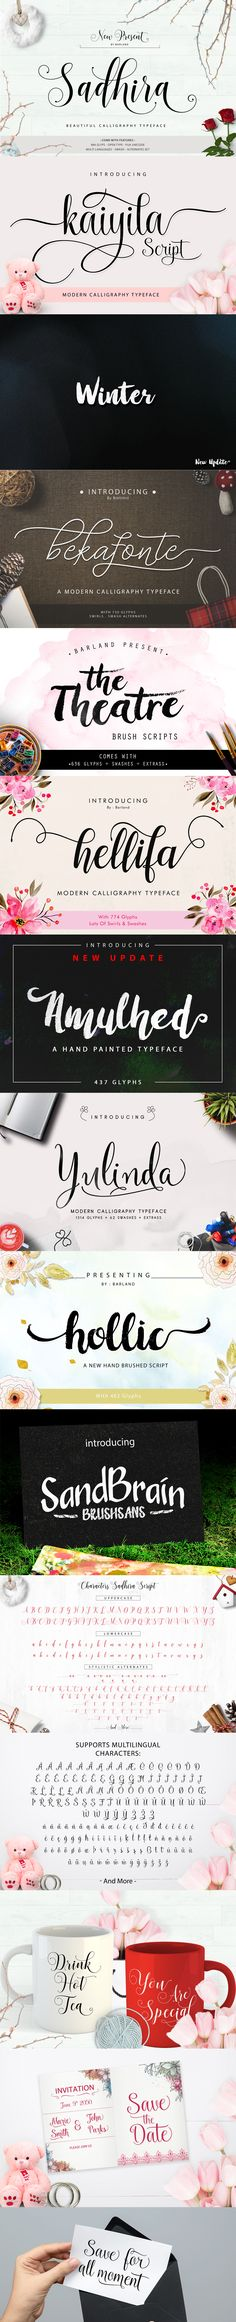 The Sweet Variety Font Bundle – just $13